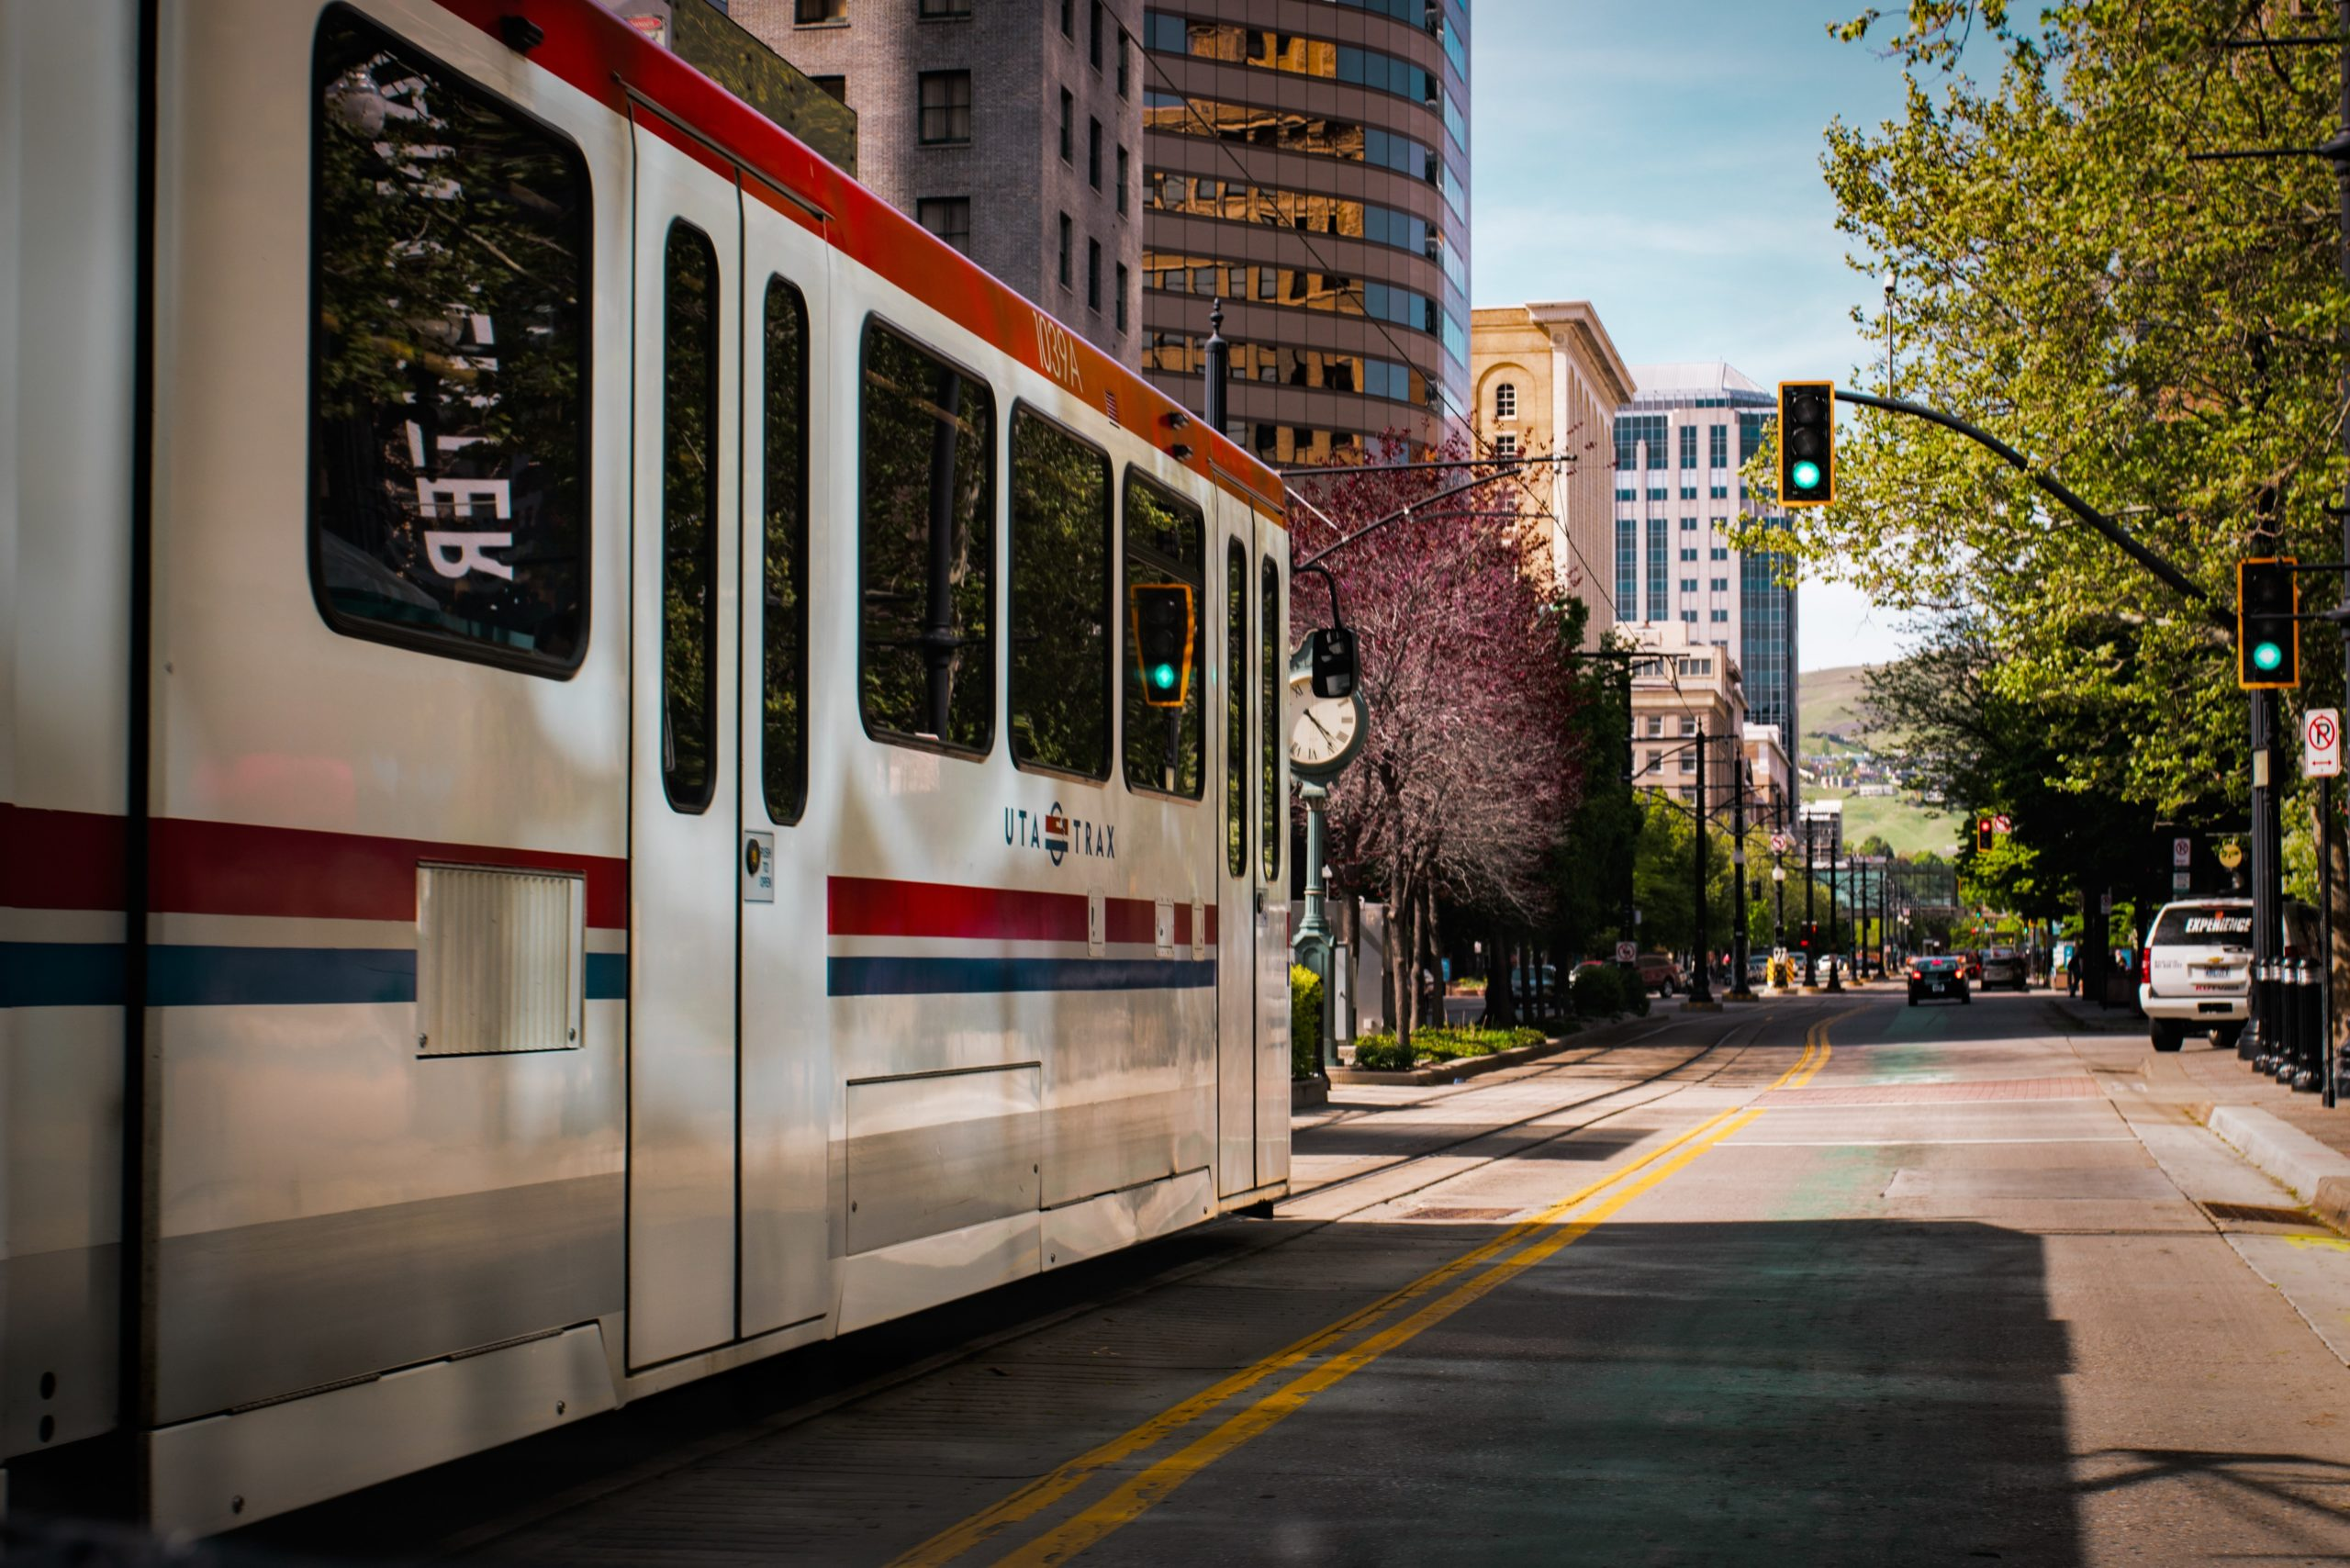 There are plans to expand Utah transit corridors, and that could have a huge impact on businesses throughout the valley.